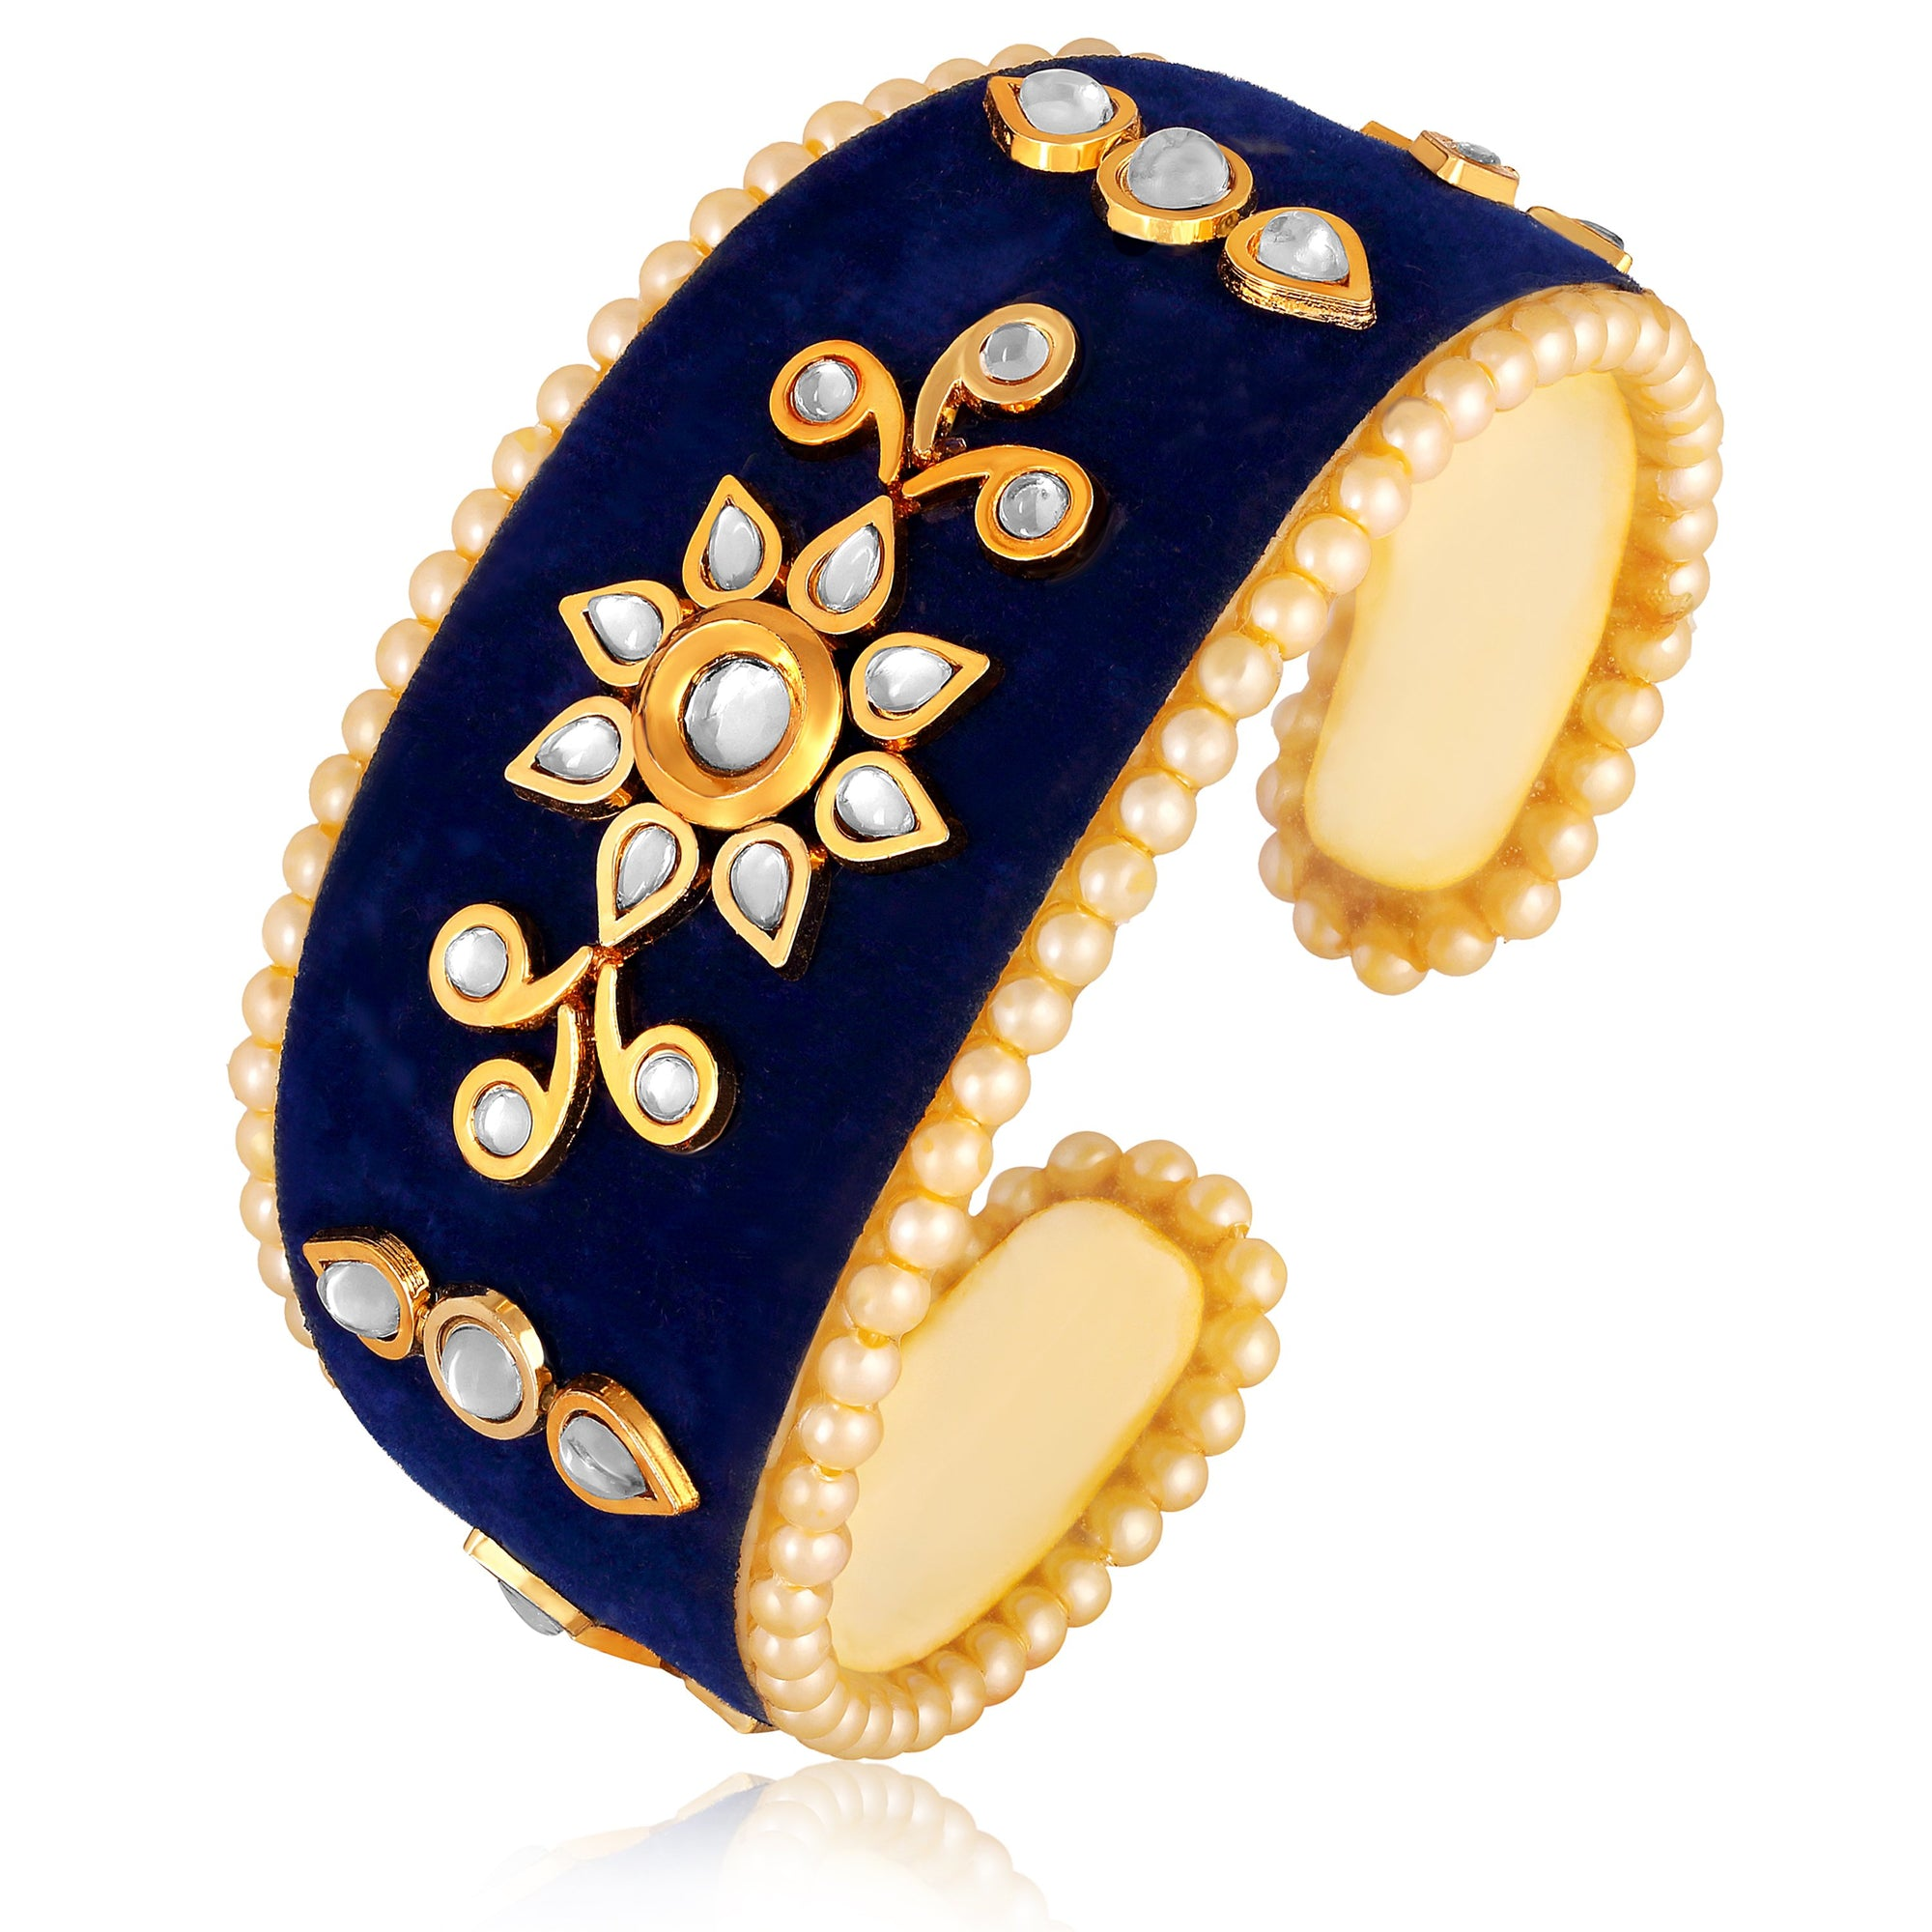 Asmitta Jewellery Alloy Gold- Kada  -K340